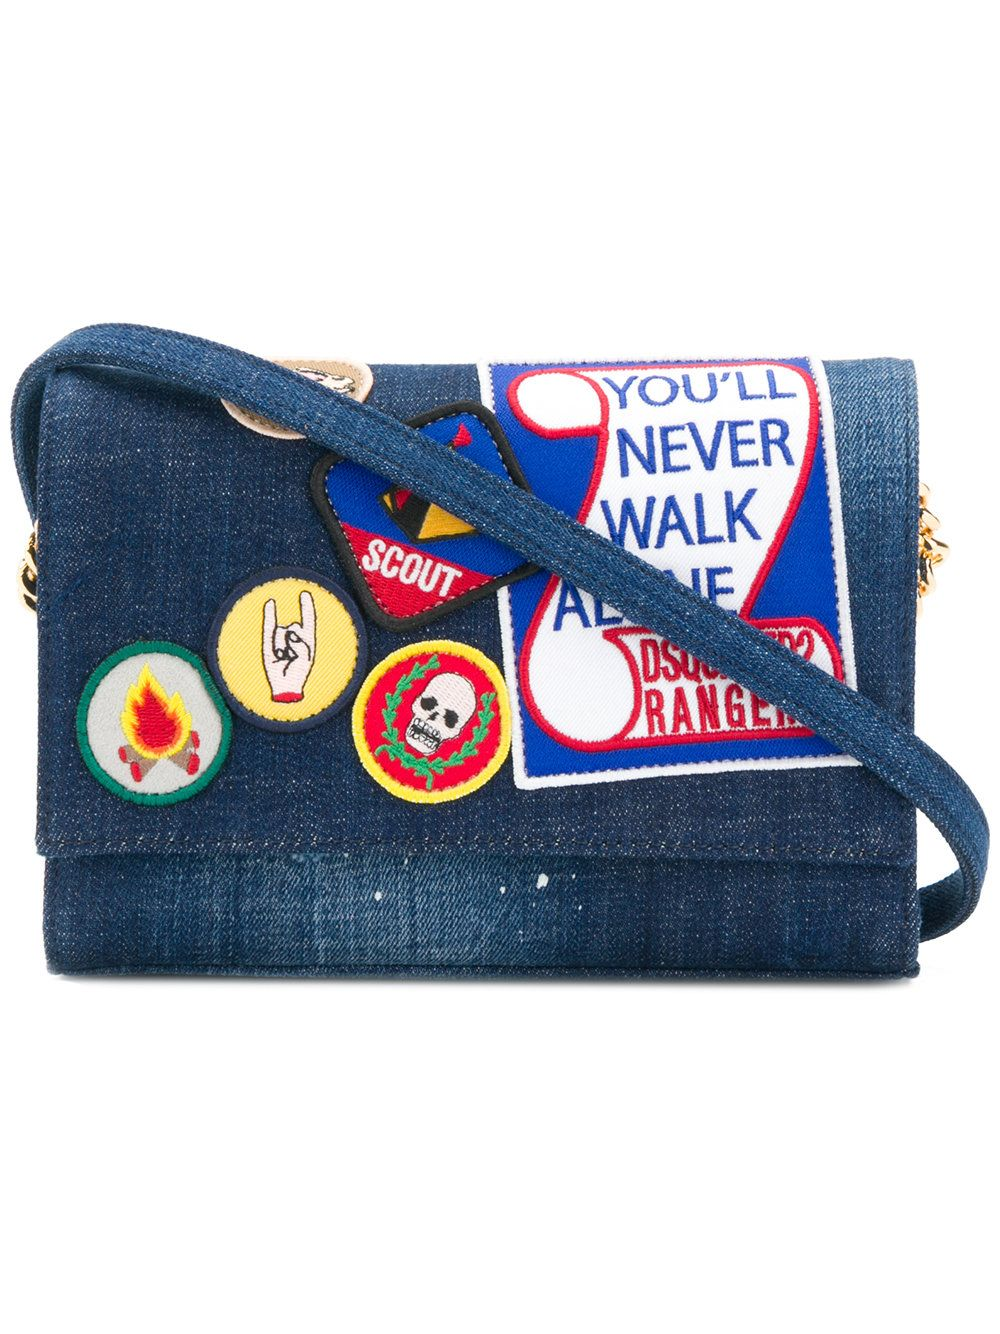 Get New Browse Cheap Price badge denim shoulder bag - Blue Dsquared2 Clearance Sast Best Inexpensive For Sale T3YnP